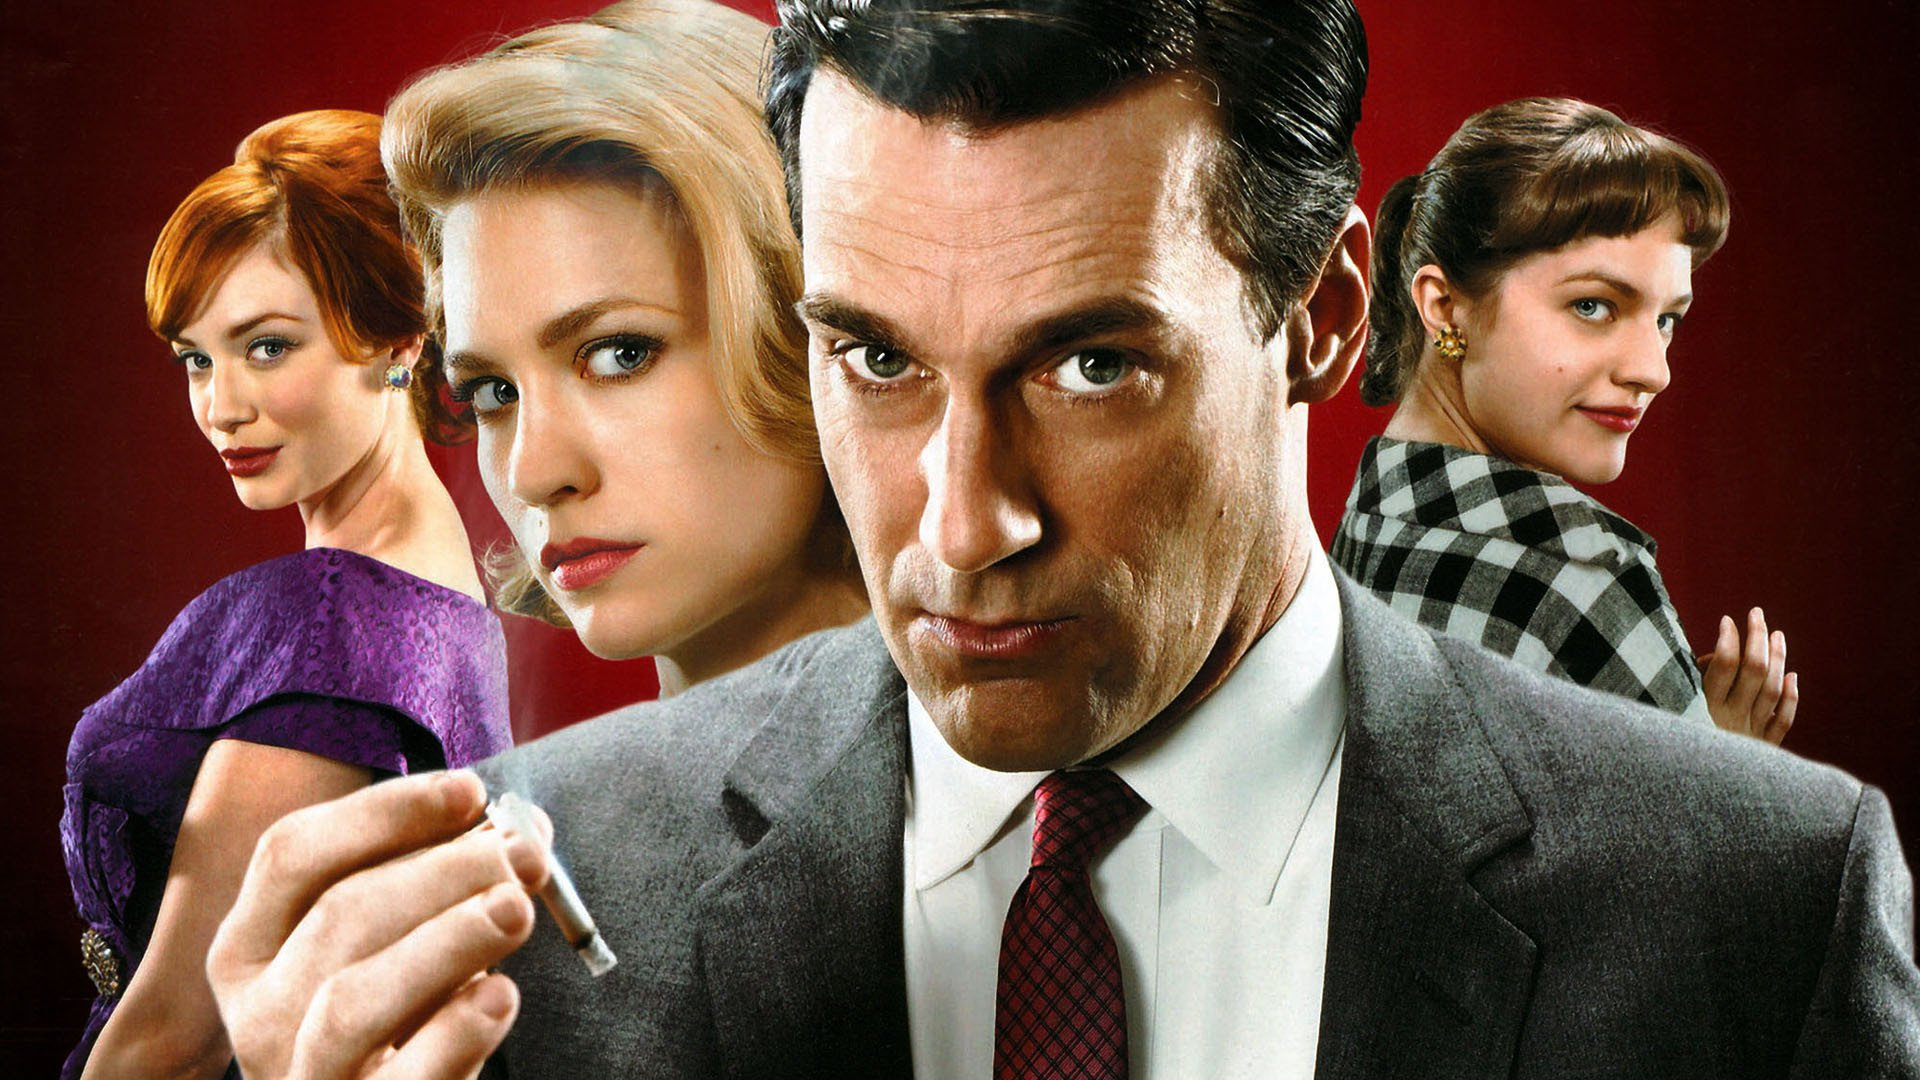 Can You Identify These Mad Men Actors?